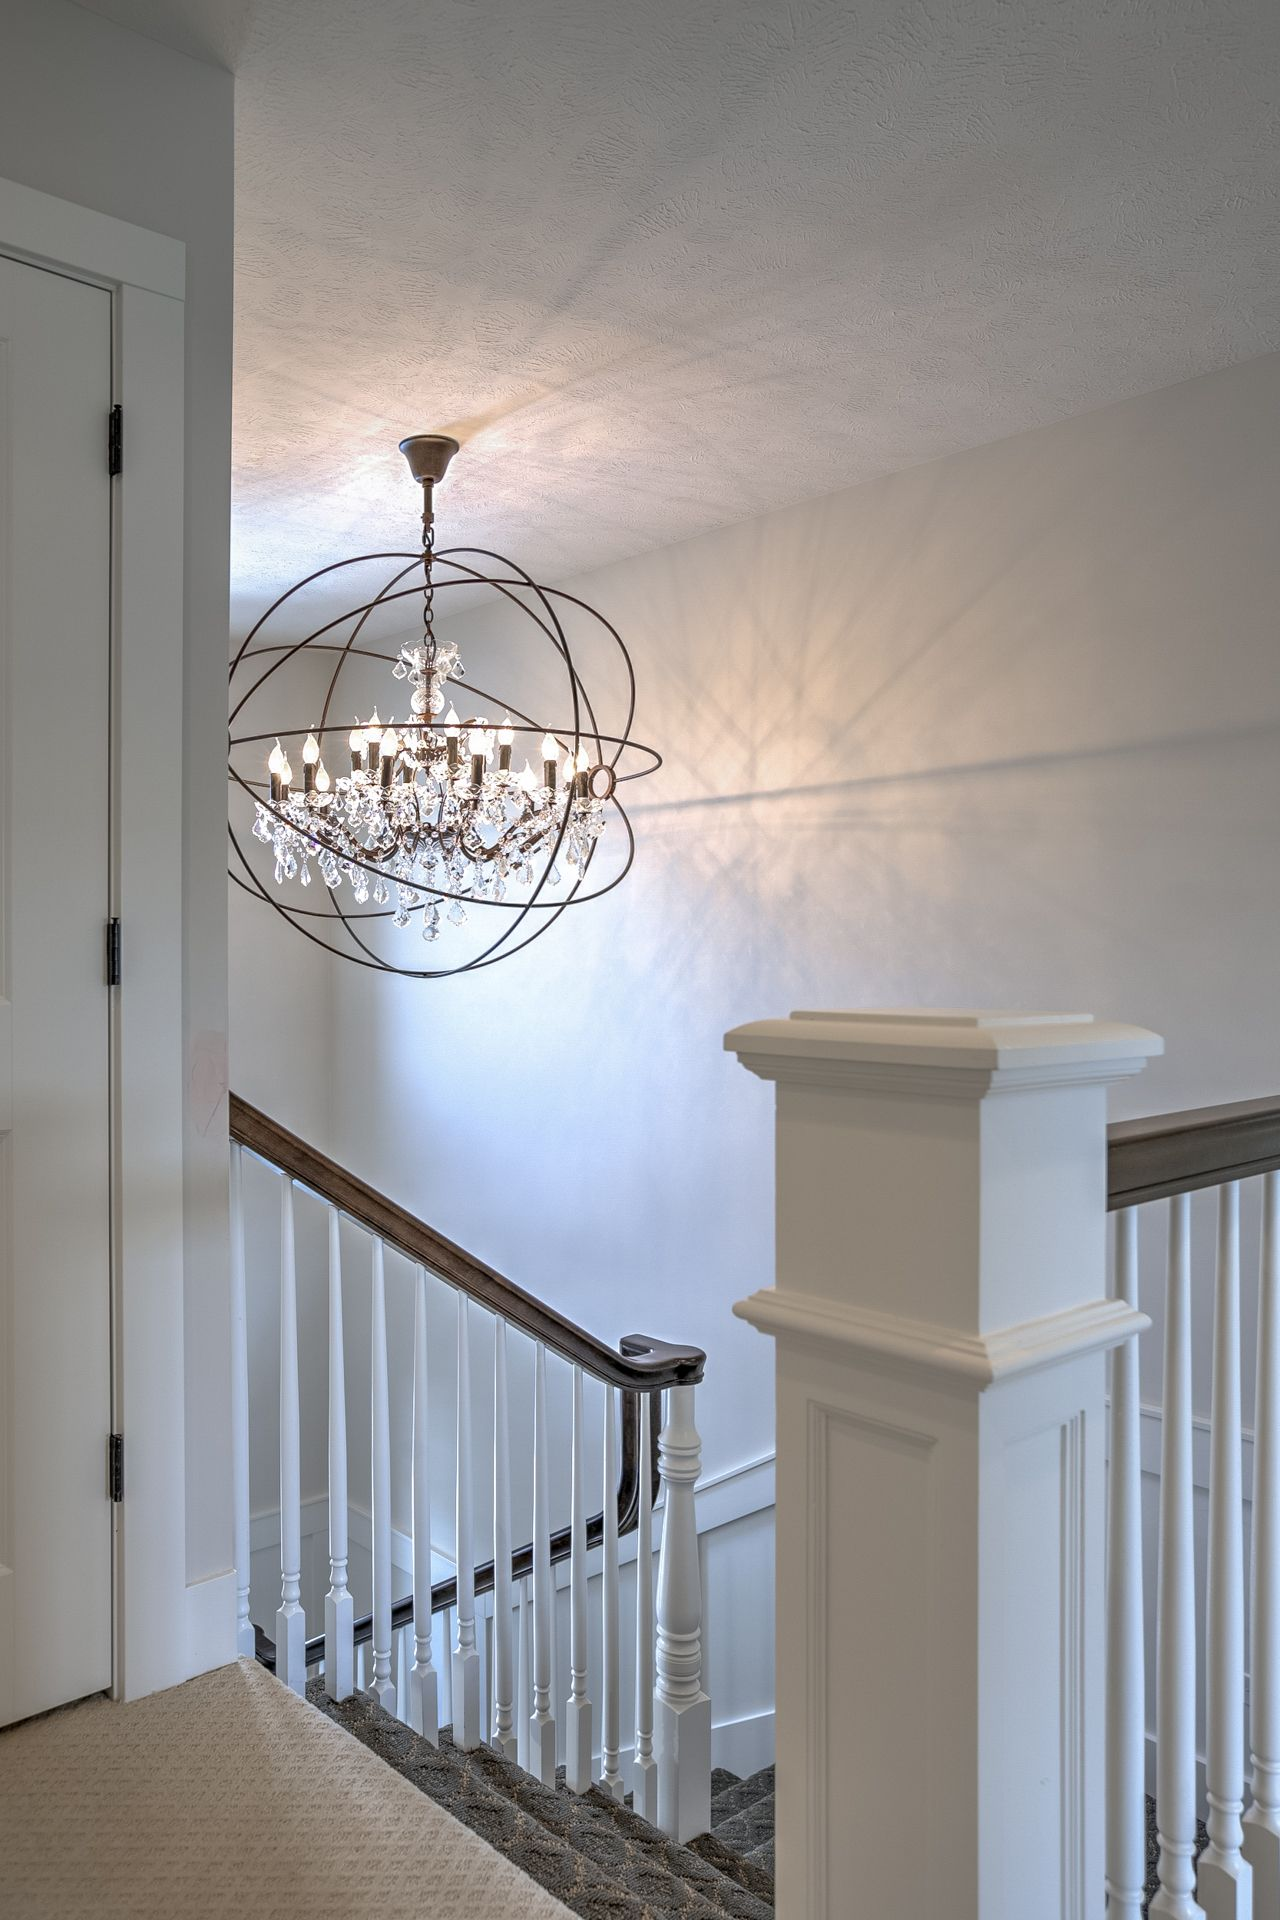 Globe chandelier entry way light fixture staircase www buildalandmark com